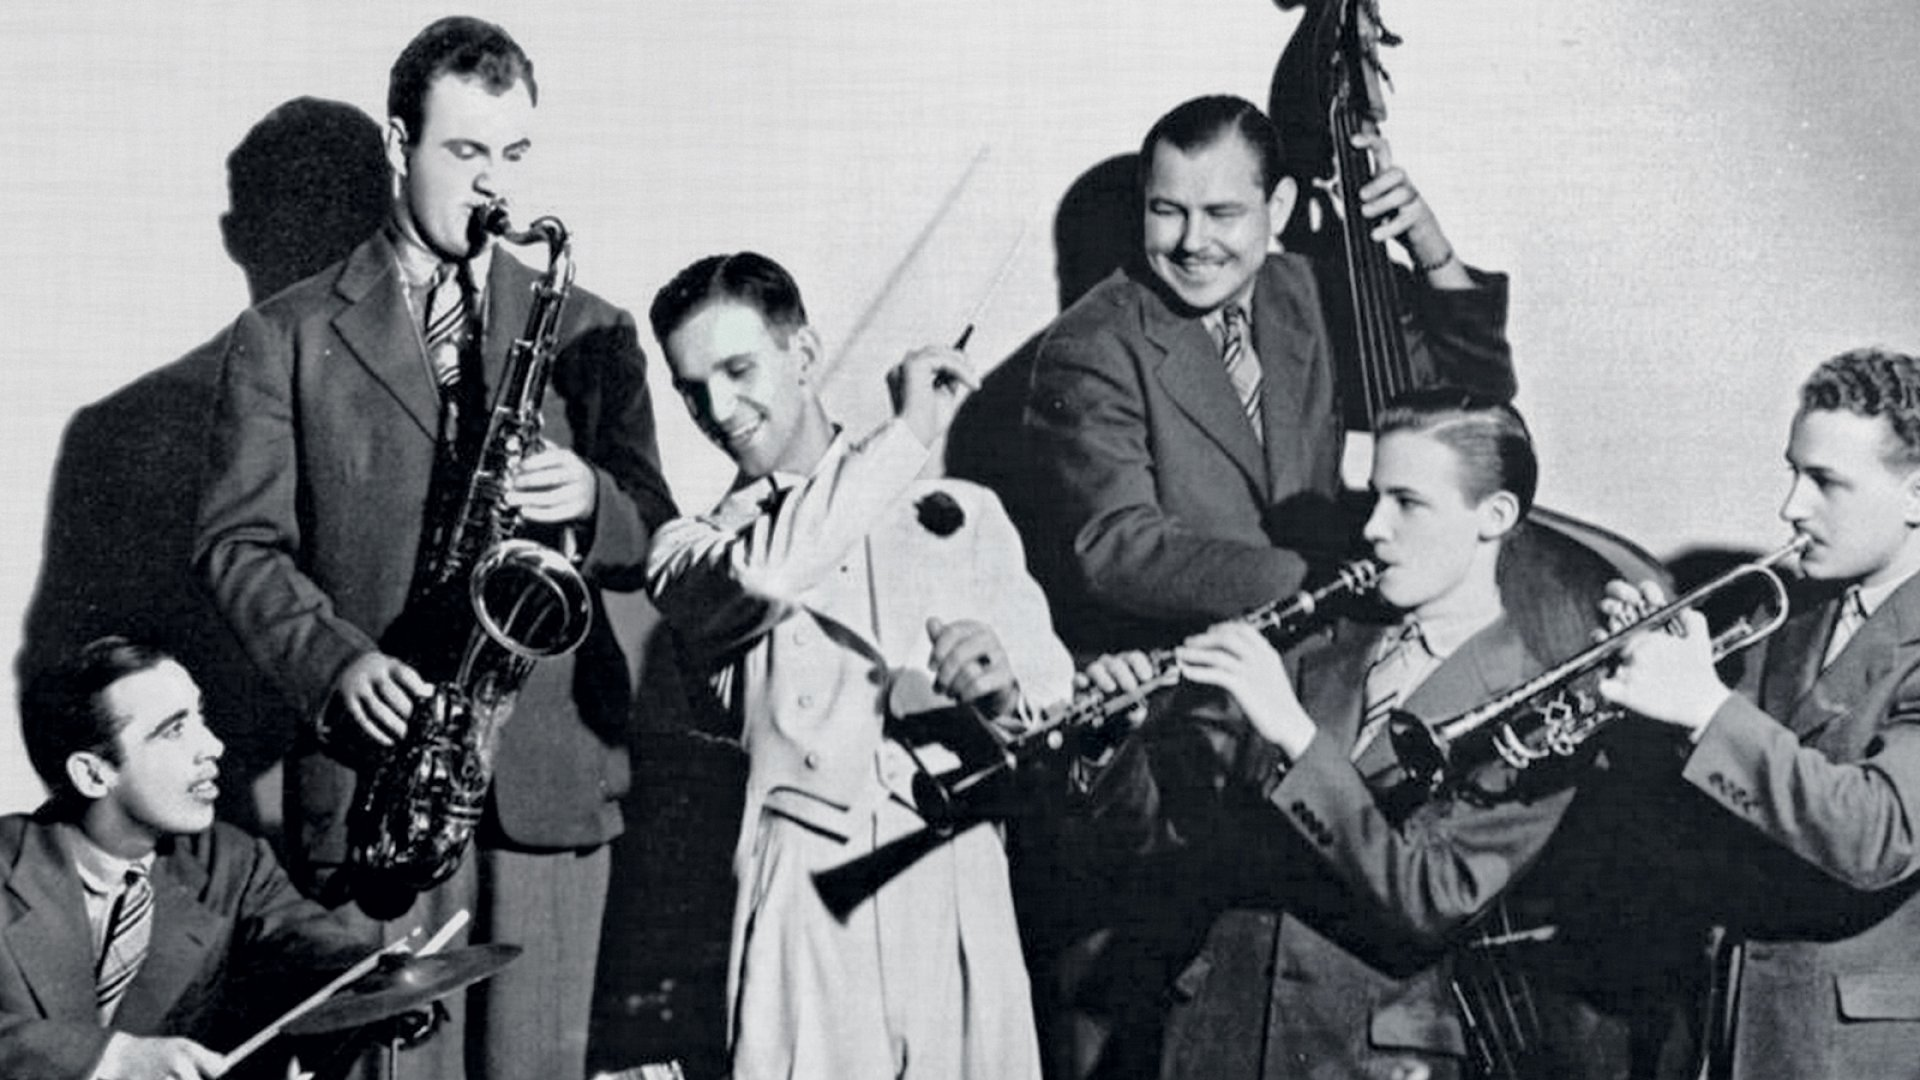 A bandleader in the 1930s and early '40s, Leonard Edstrom (in white tails), along with his brother Hal, later pivoted to music publishing. It was